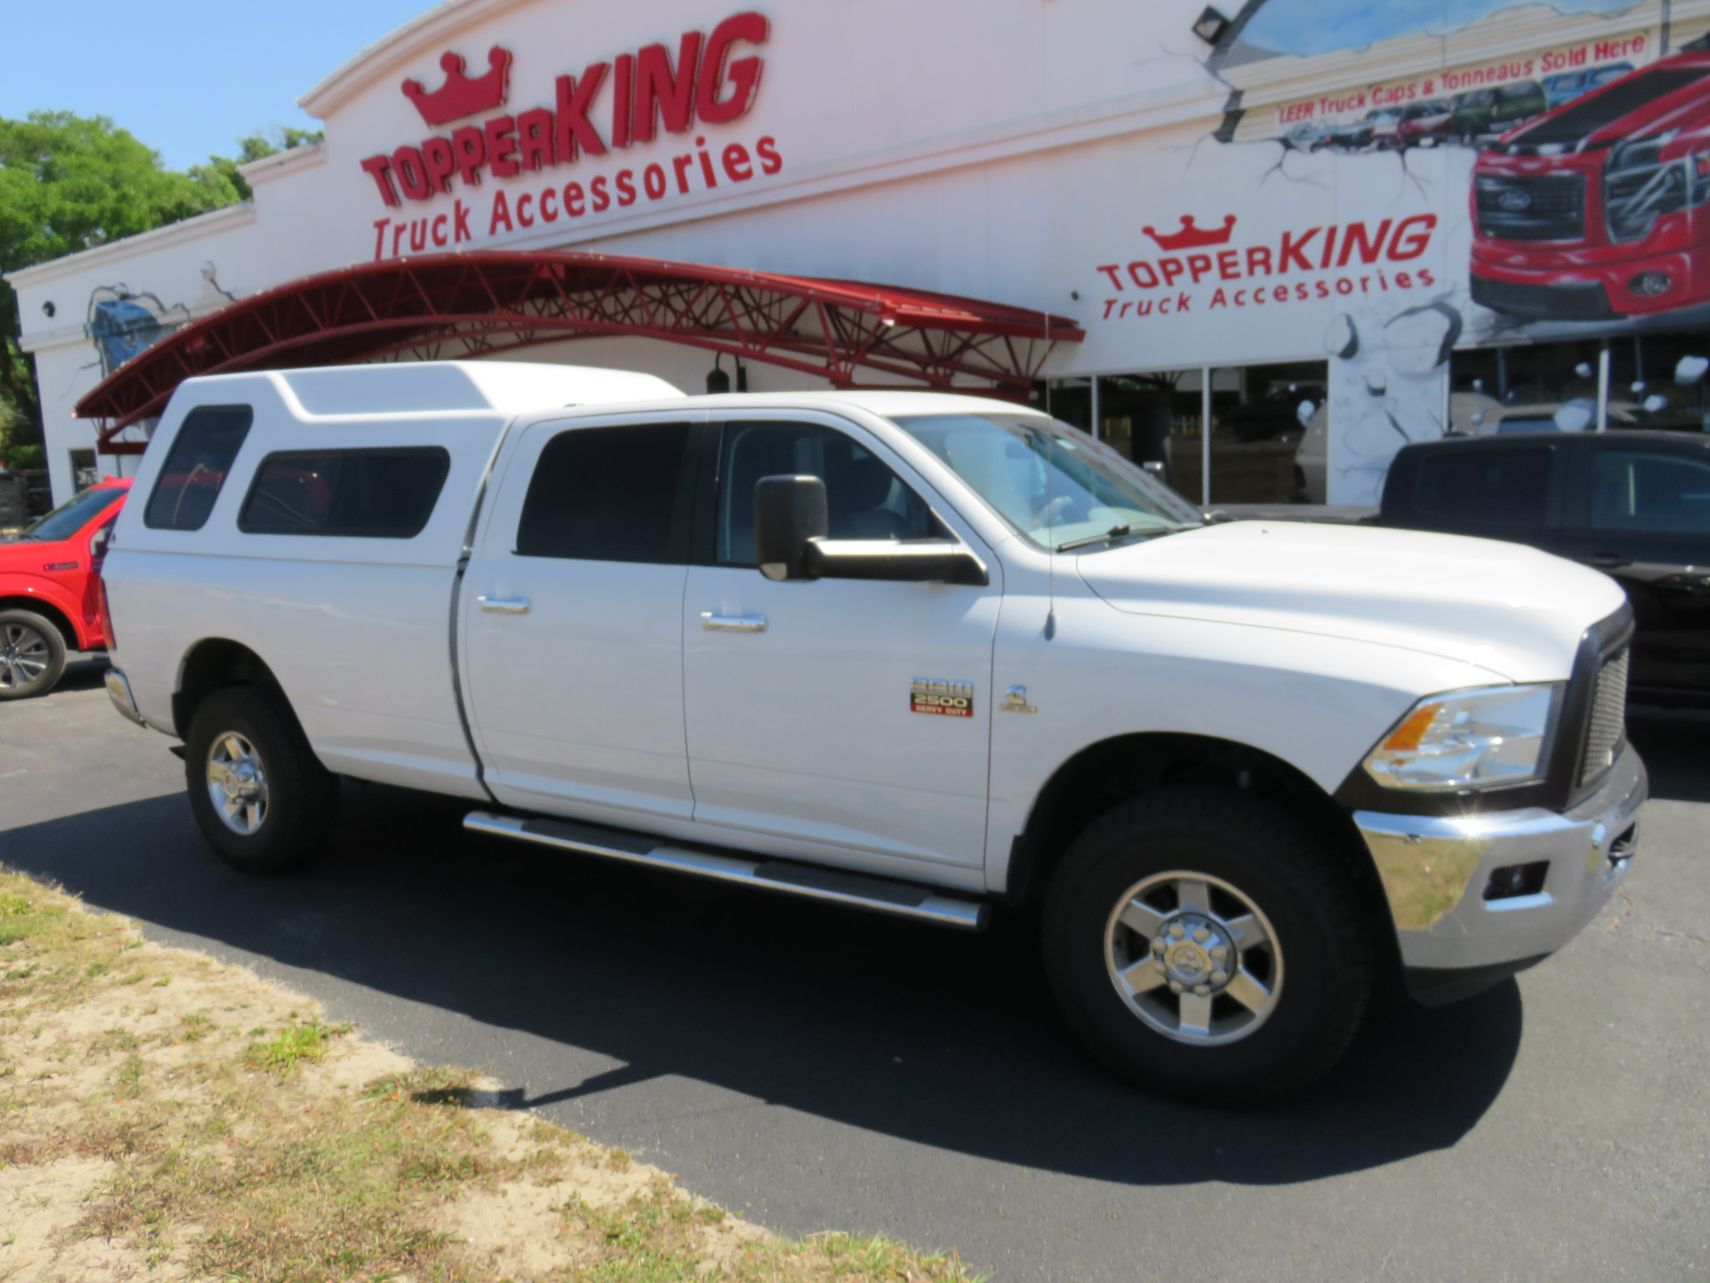 2012 Dodge RAM with LEER 122, Nerf bars, Windoor, Tint, Hitch by TopperKING Brandon 813-689-2449 or Clearwater FL 727-530-9066. Call Today!